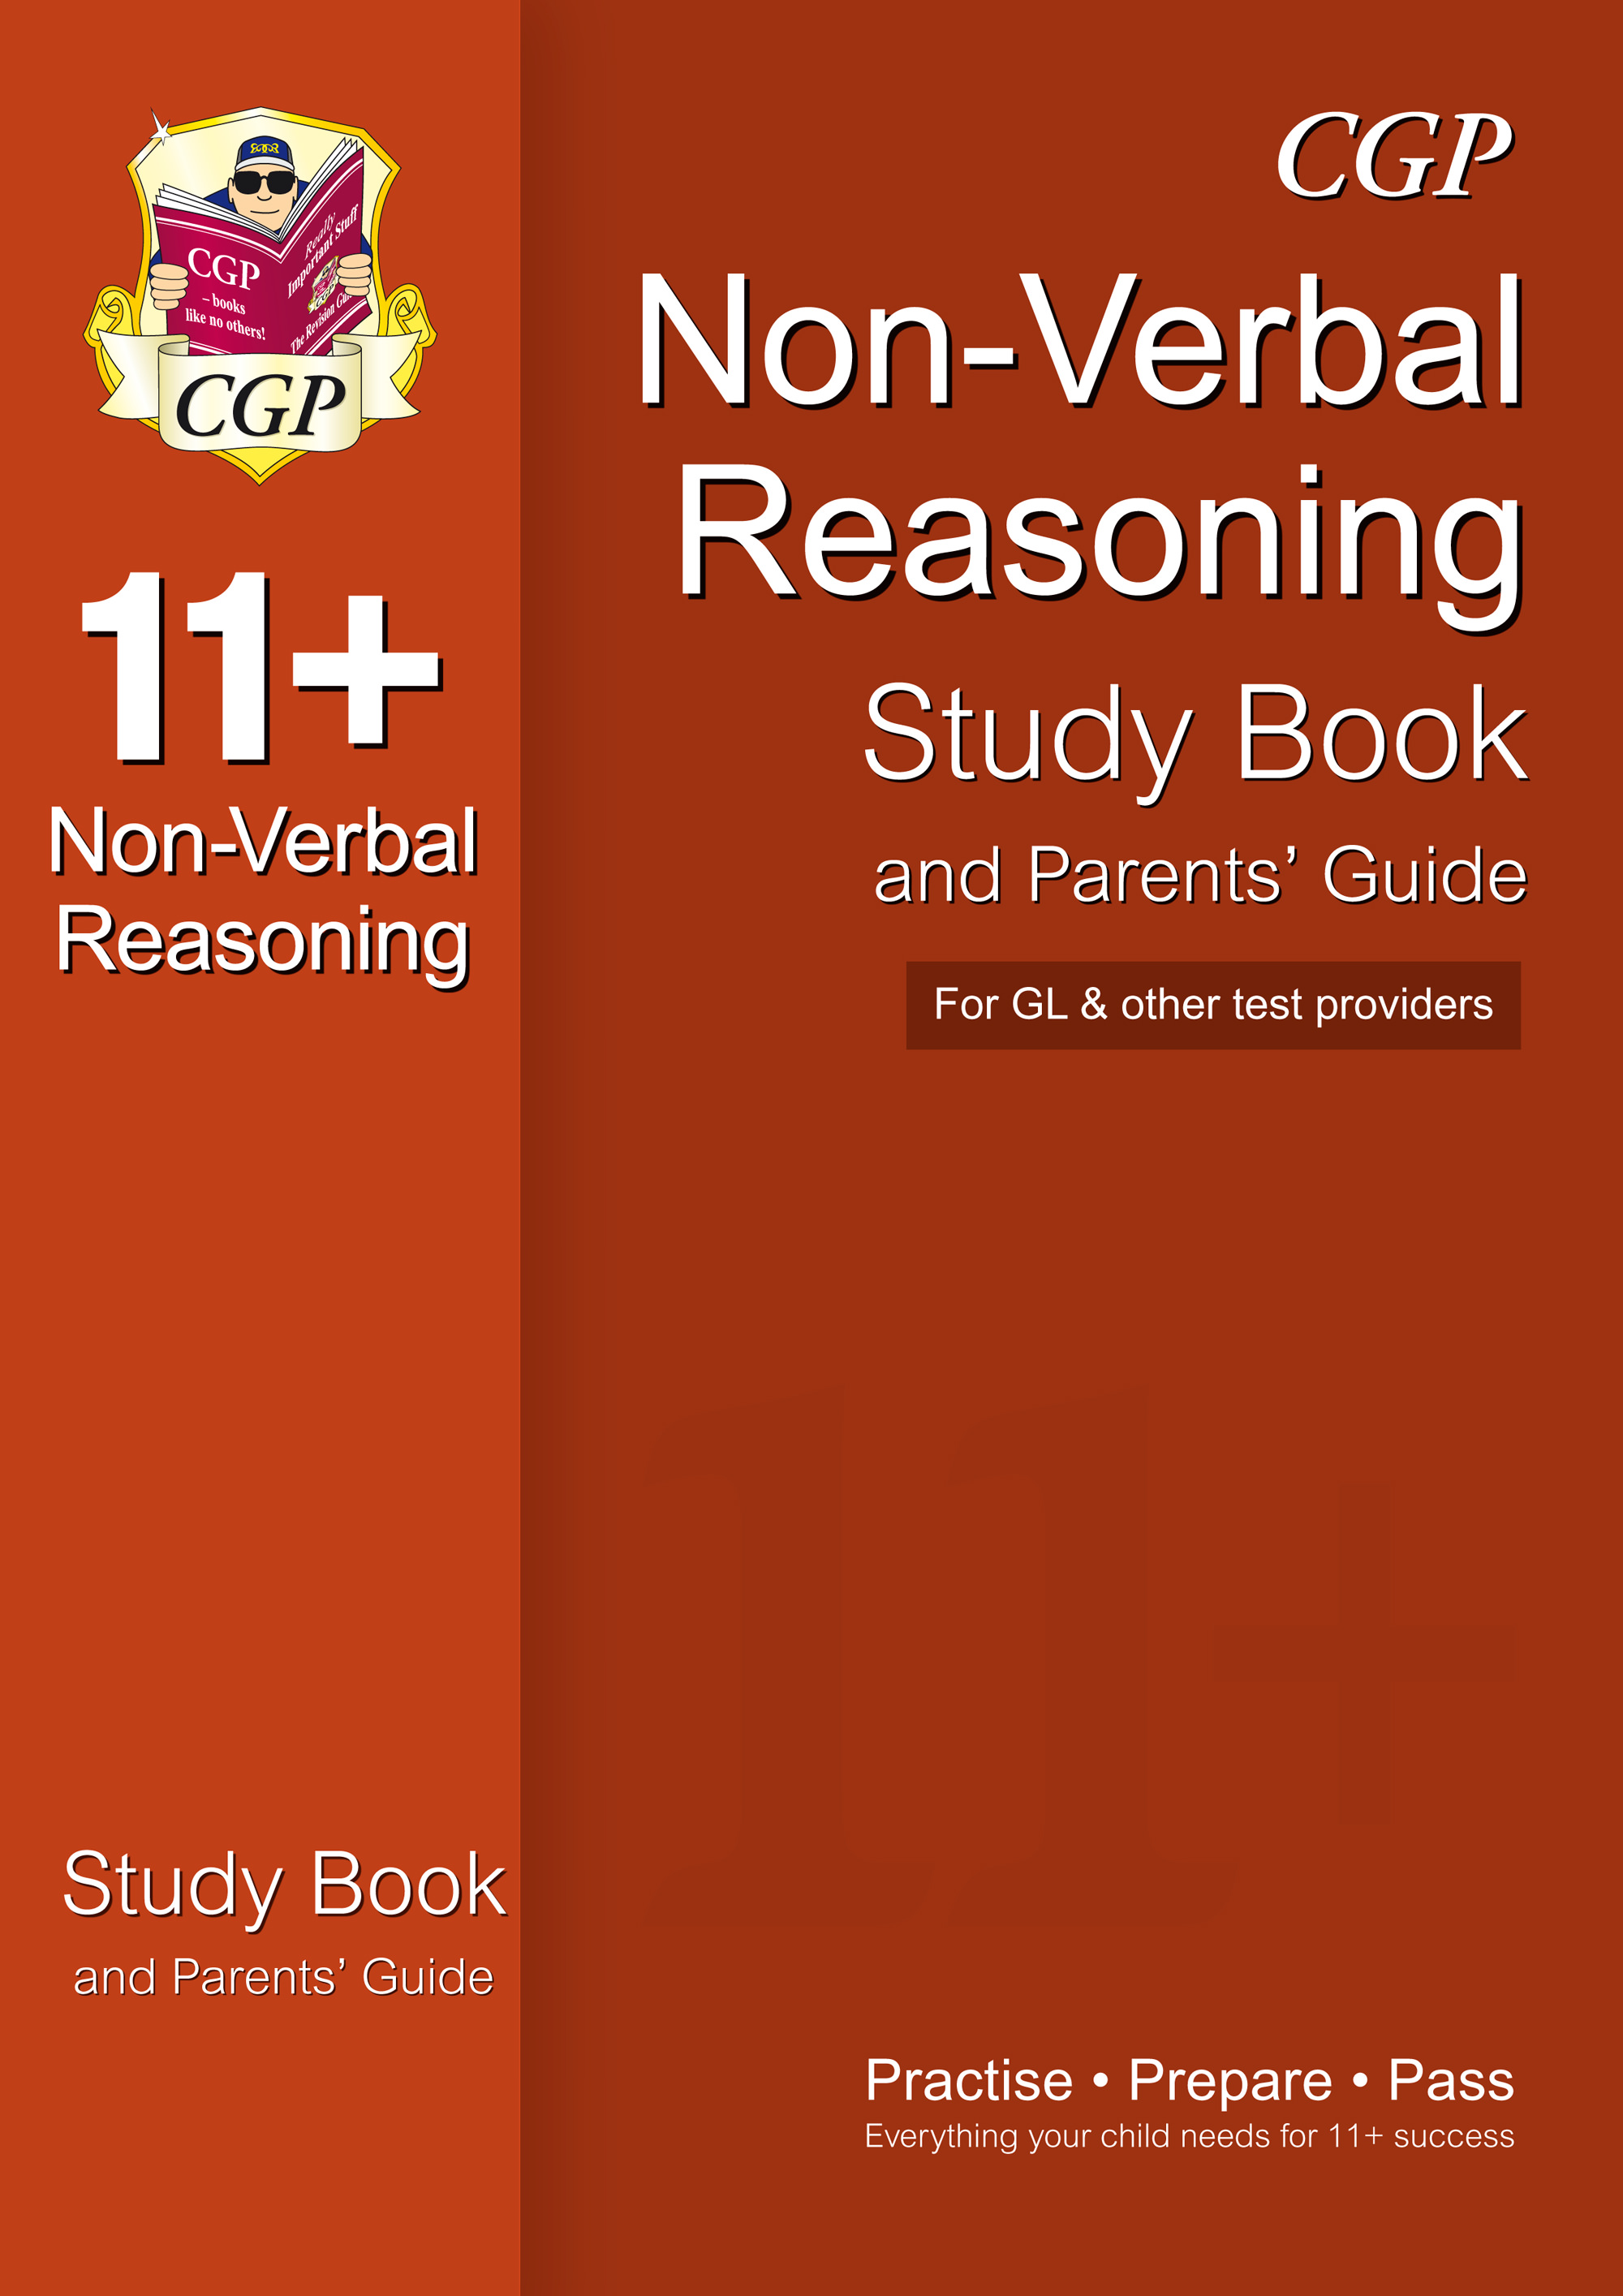 NHRE1 - 11+ Non-Verbal Reasoning Study Book and Parents' Guide (for GL & Other Test Providers)